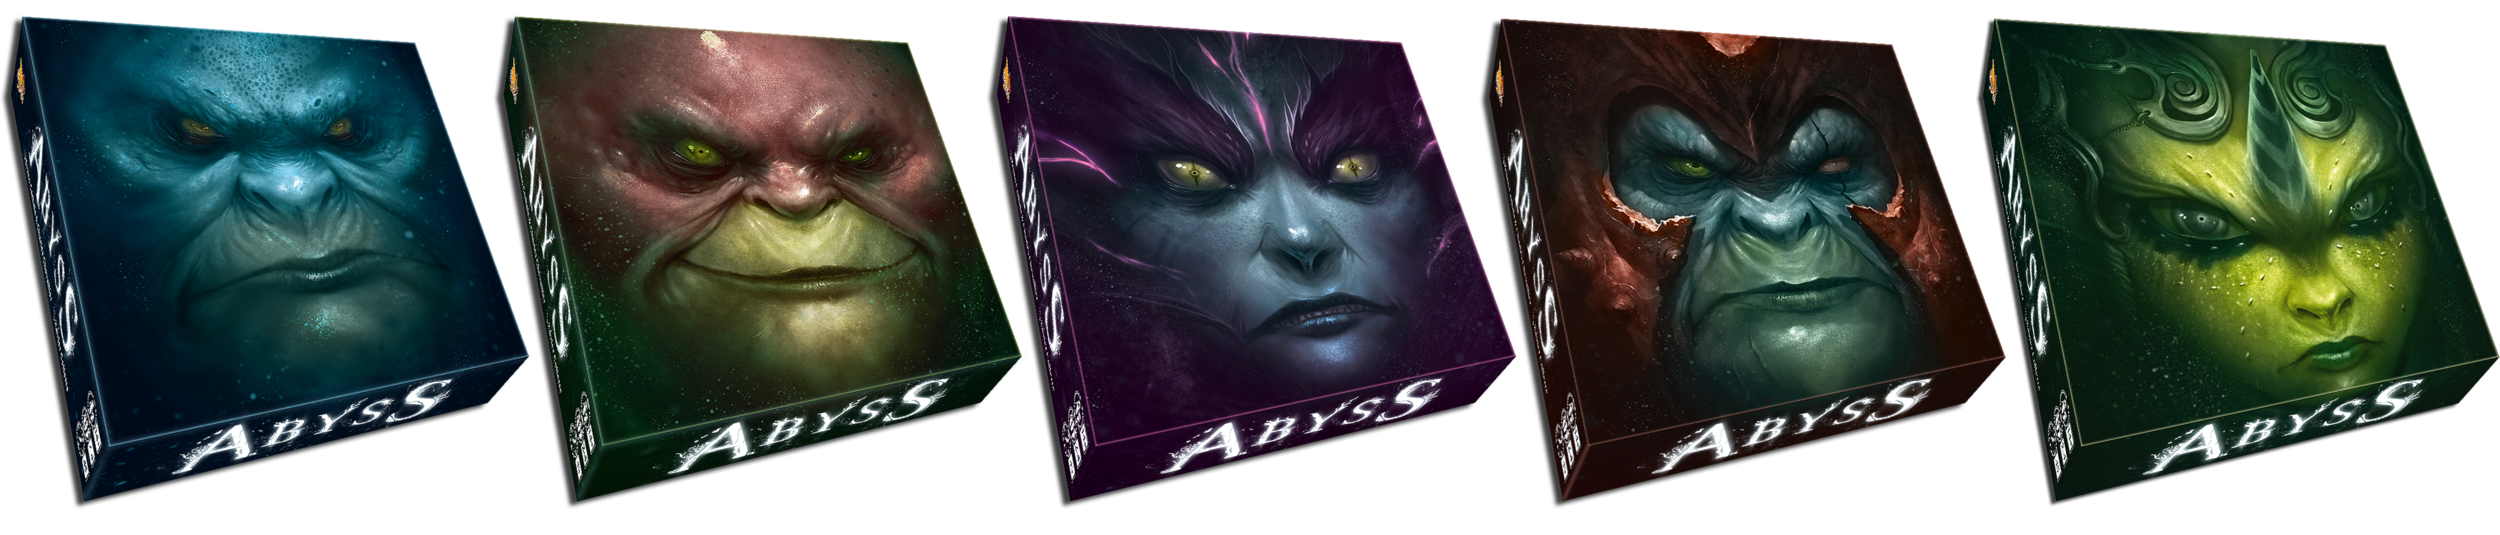 ABYSS-3DboxX4.png